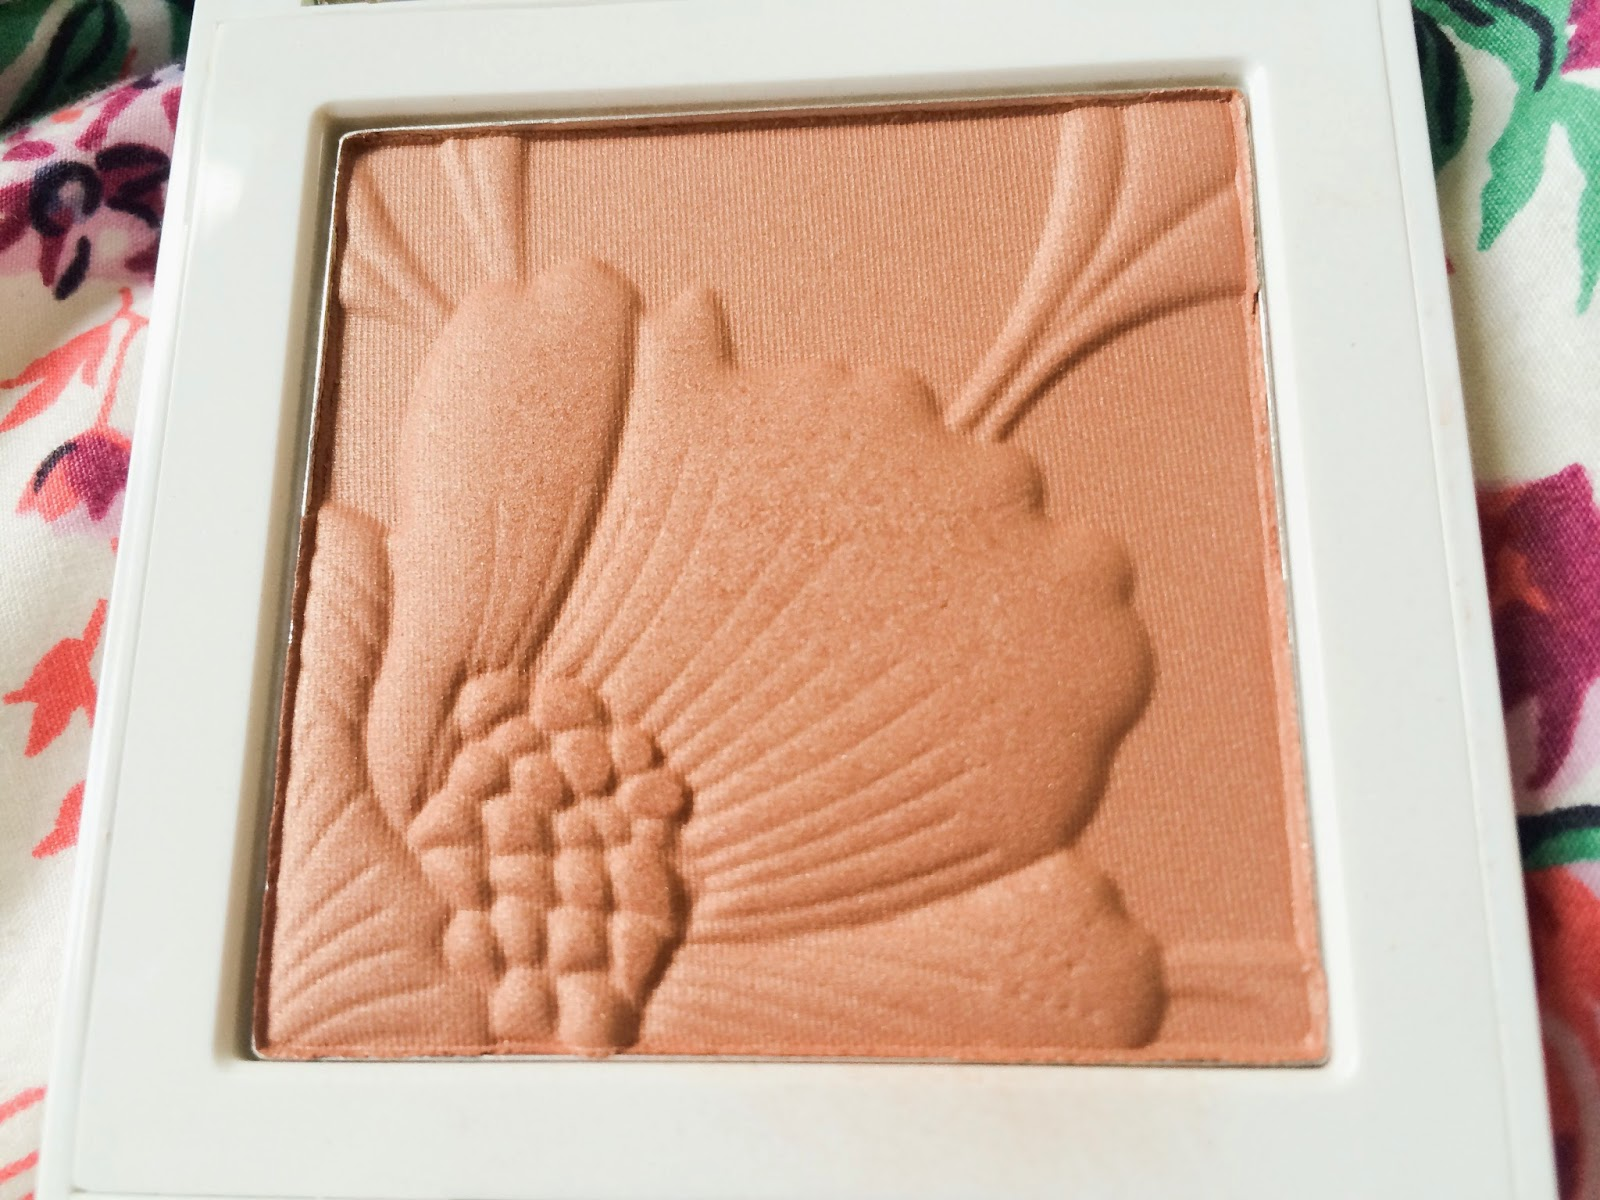 Clinique Fresh Bloom in Almond Blossom